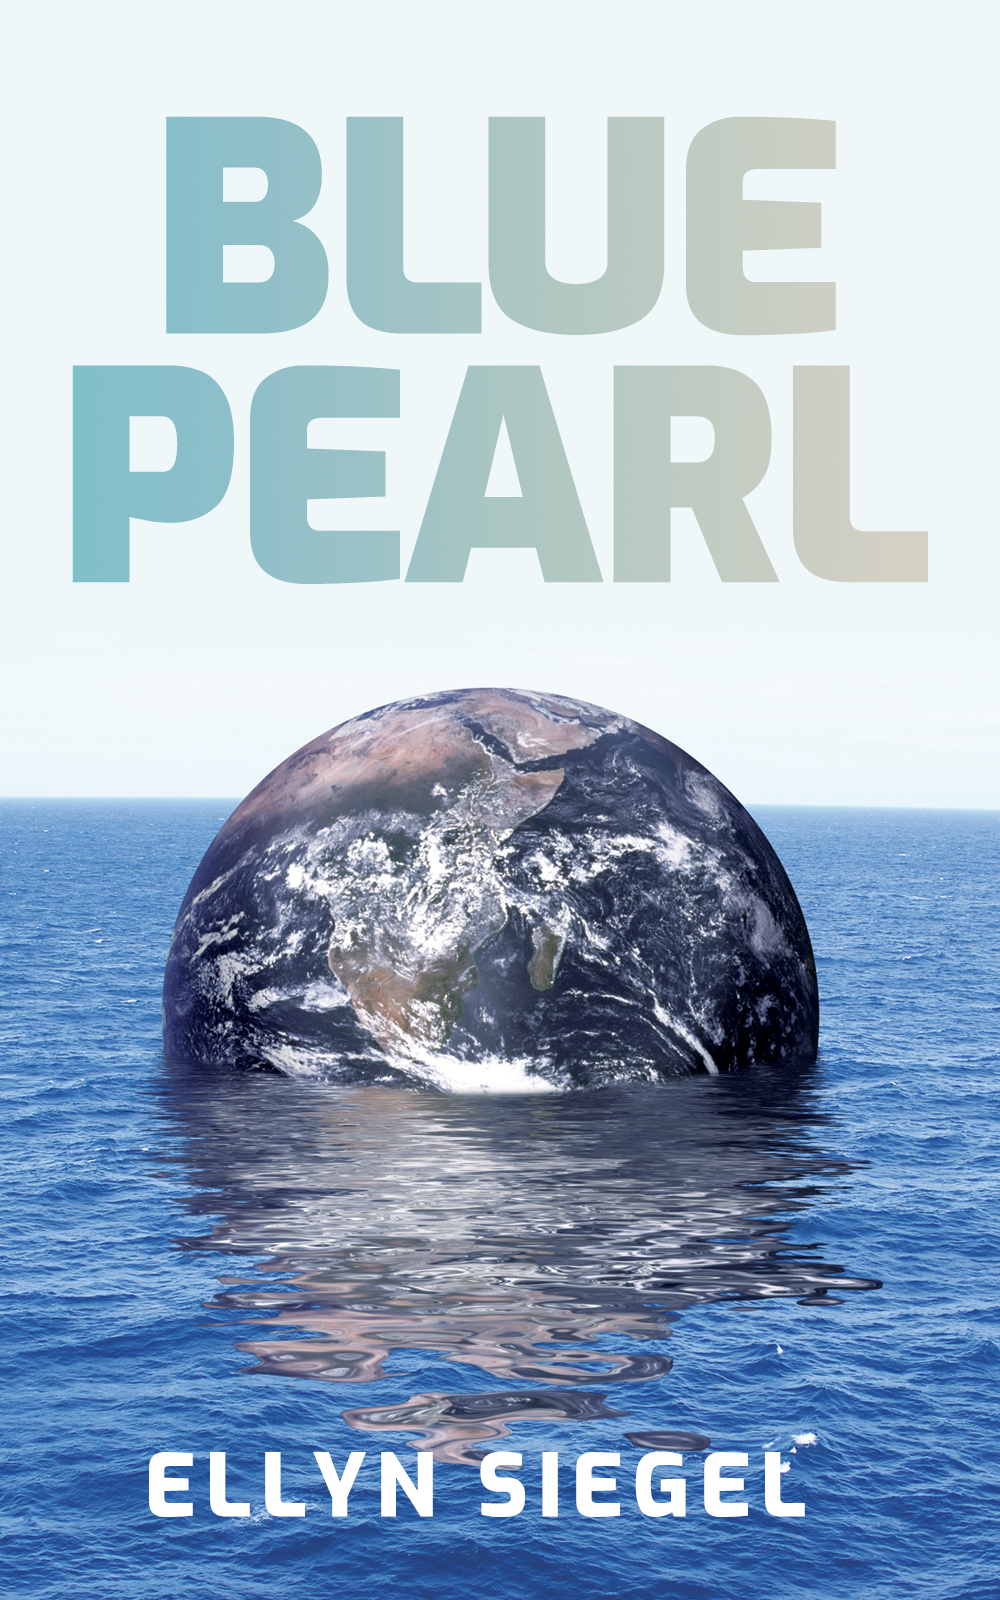 Kindle-front.PEARL